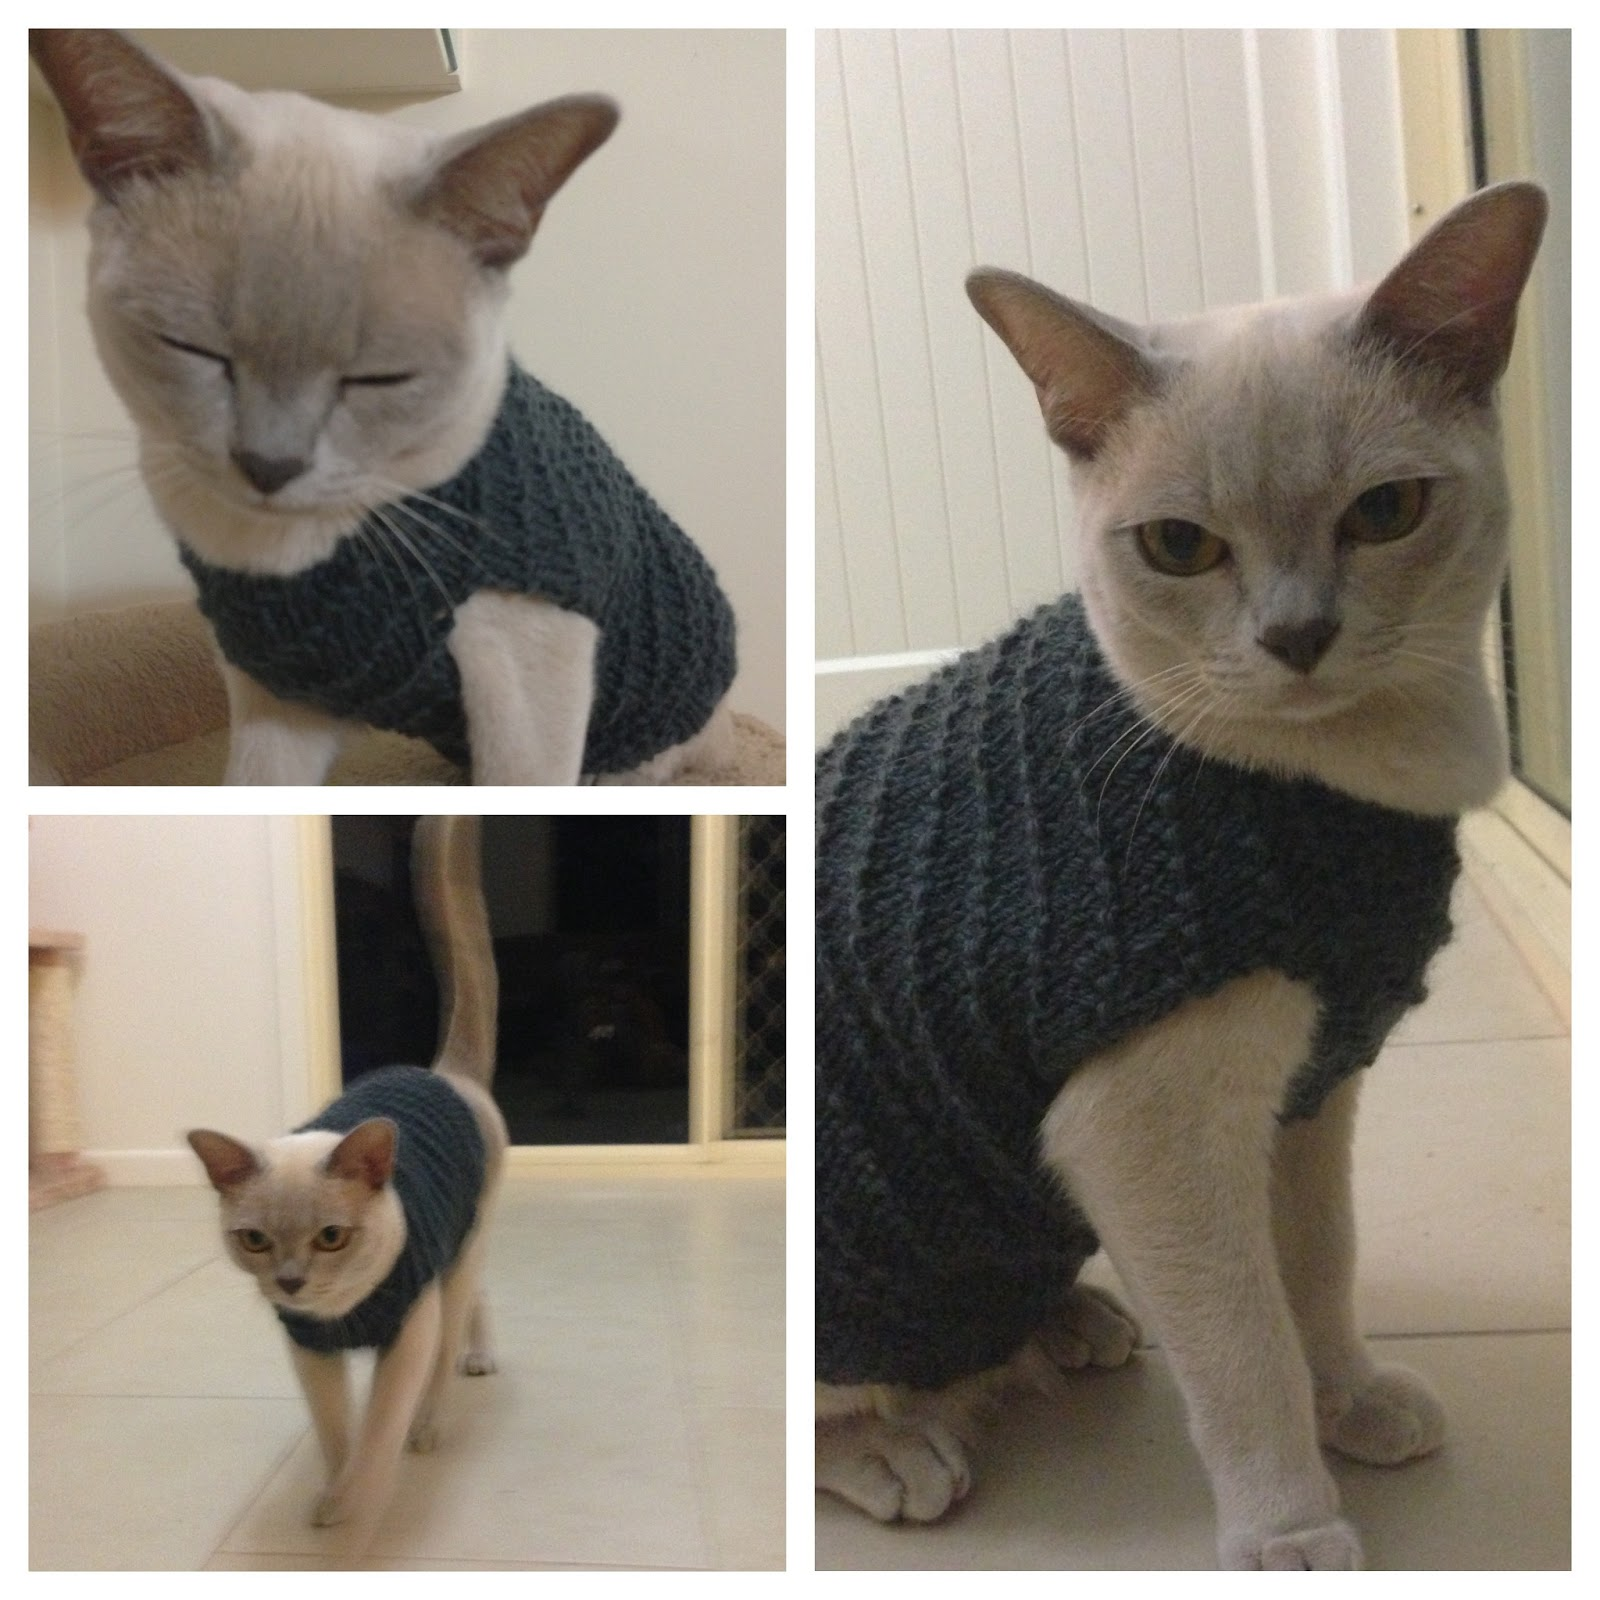 A Flood of Stitches: Crazy knitting projects - The cat jumper